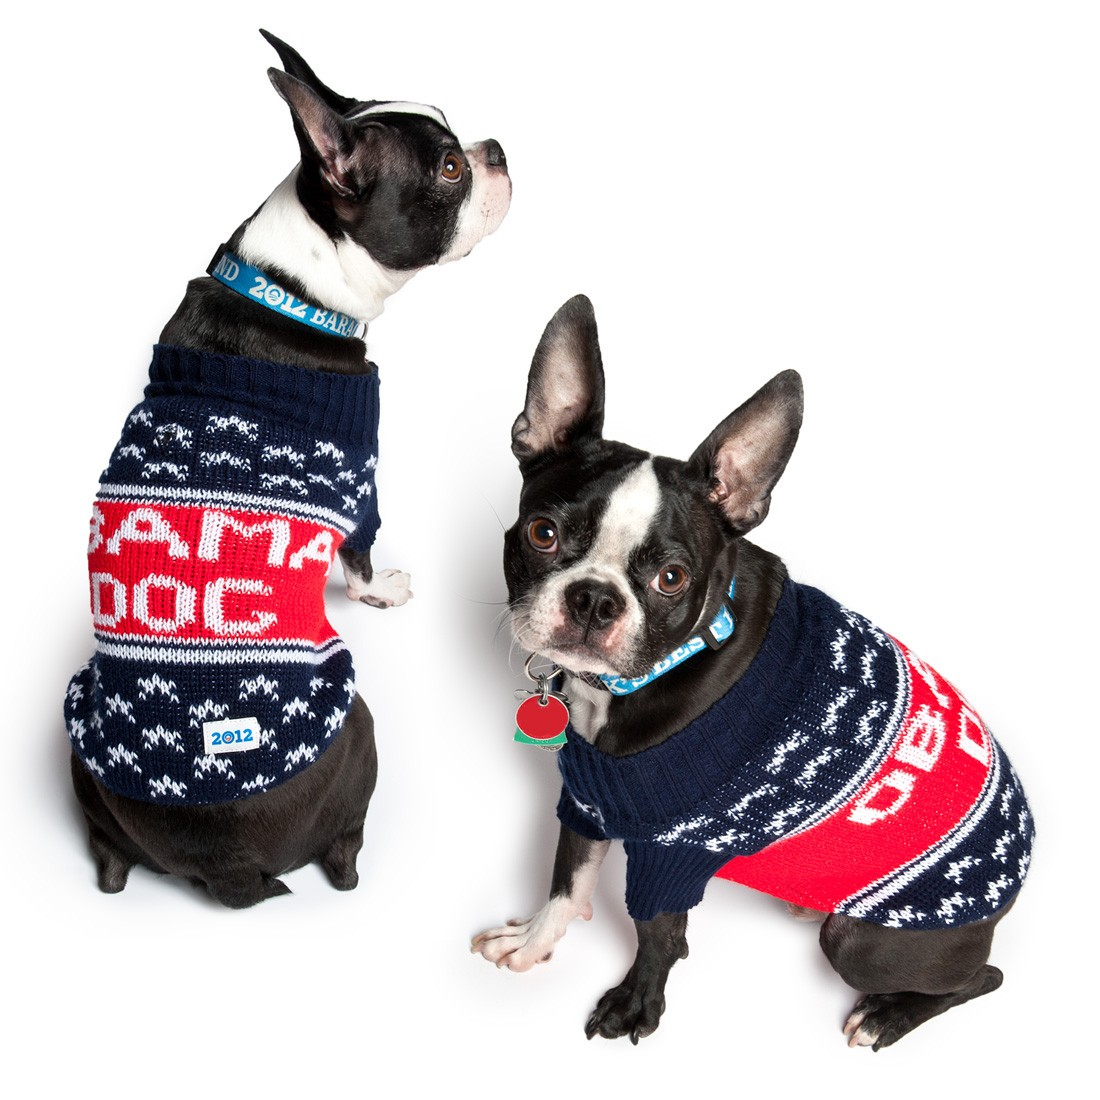 2012-02-17-ofaxxxx_obama_dog_sweater.jpg